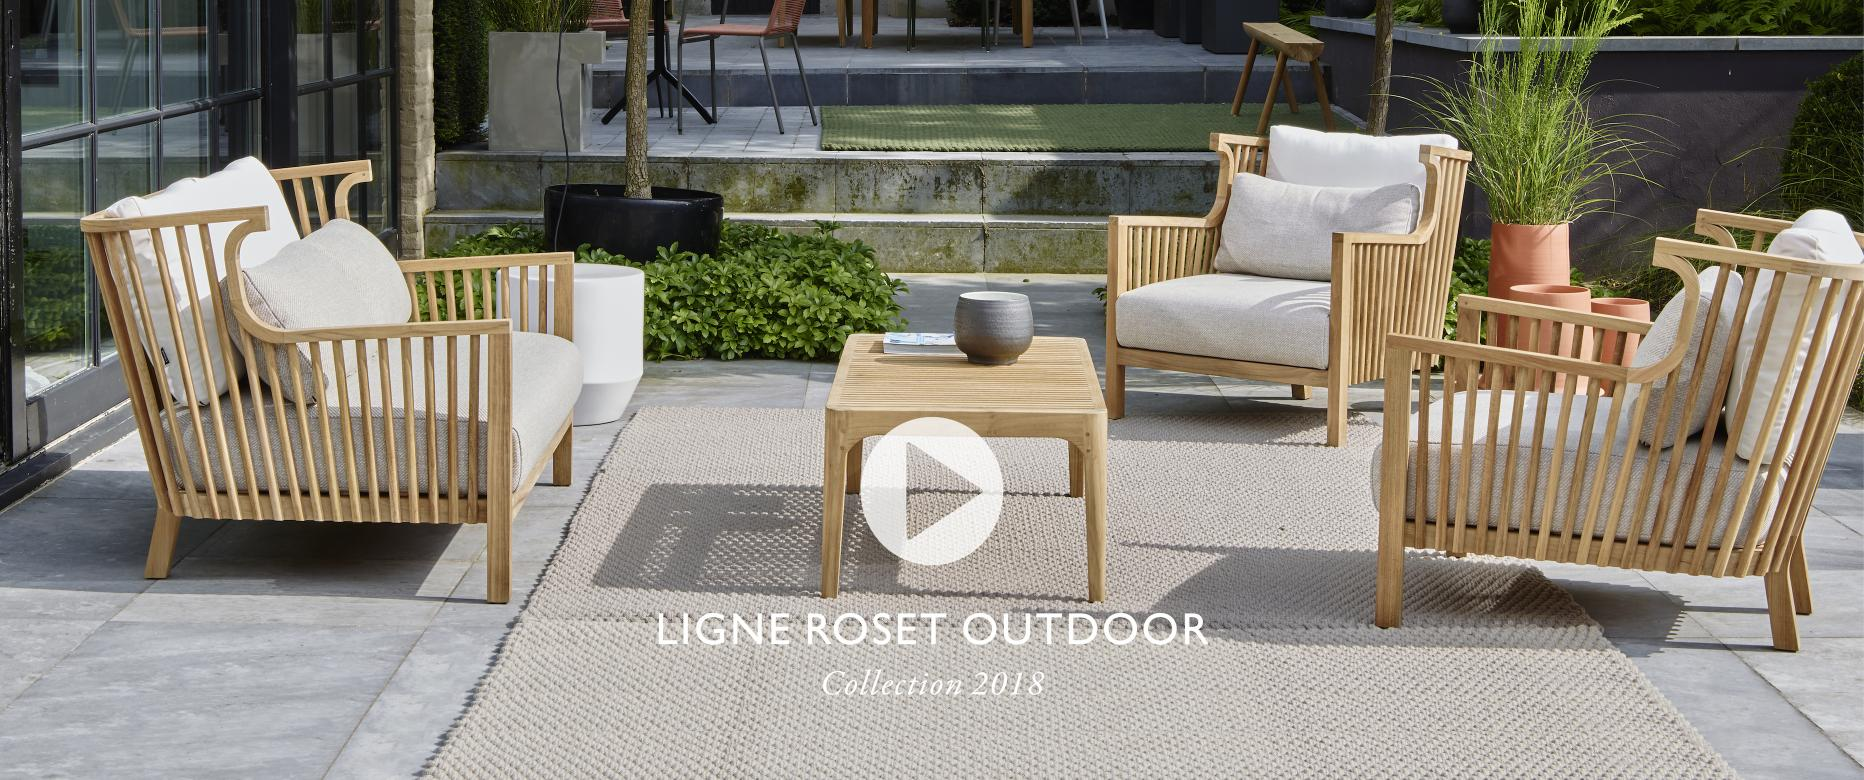 Collection Outdoor 2018 Ligne Roset